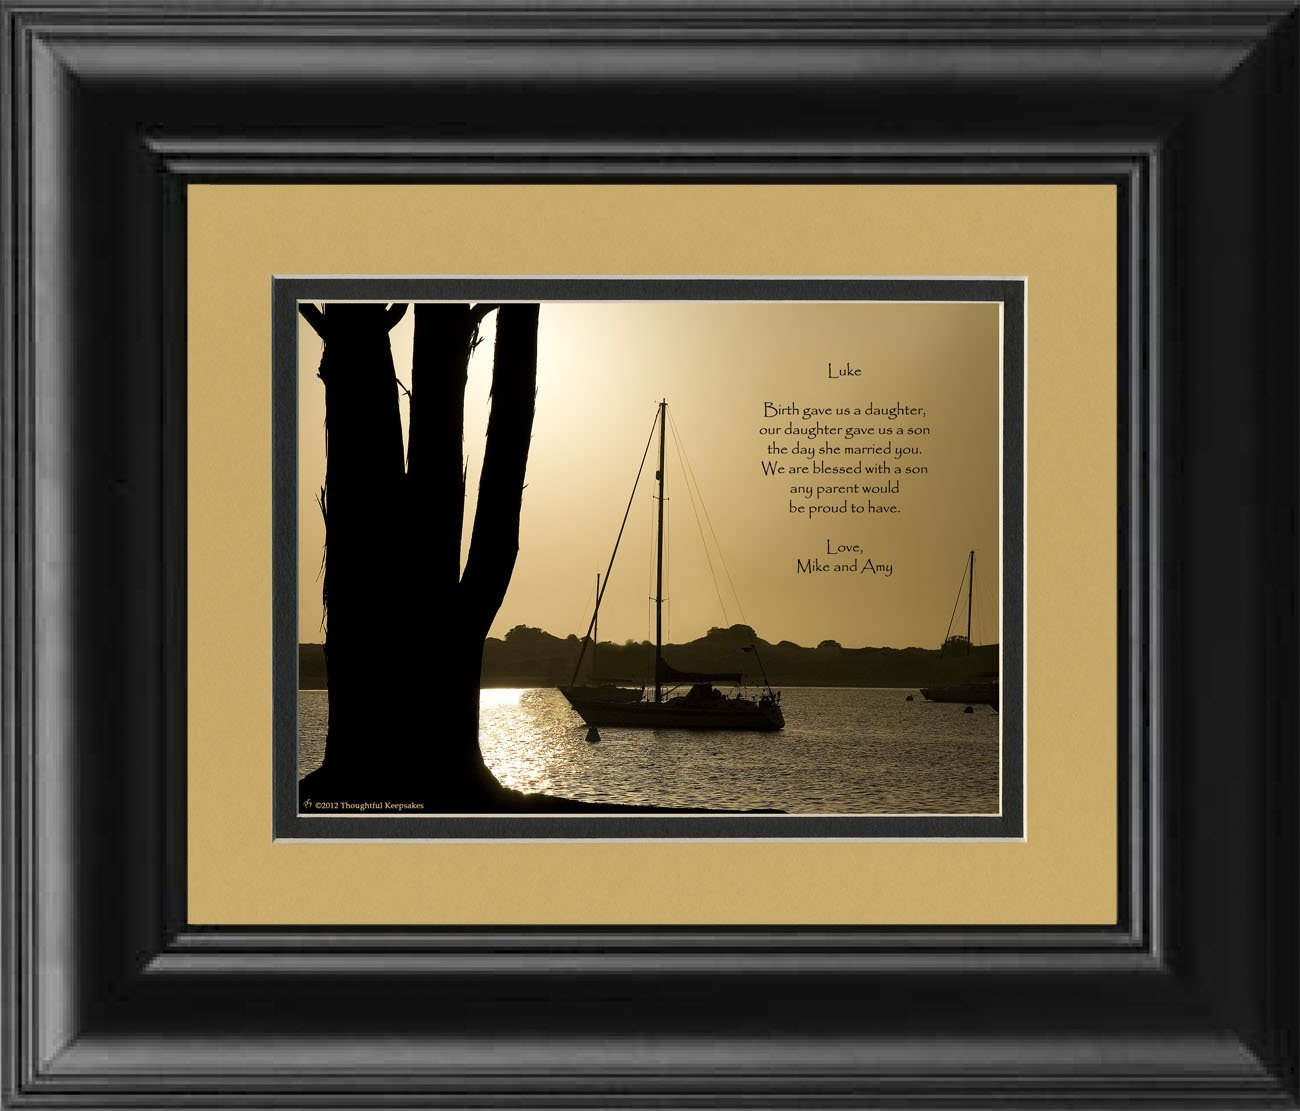 Framed Personalized Son In Law Gift With Poem